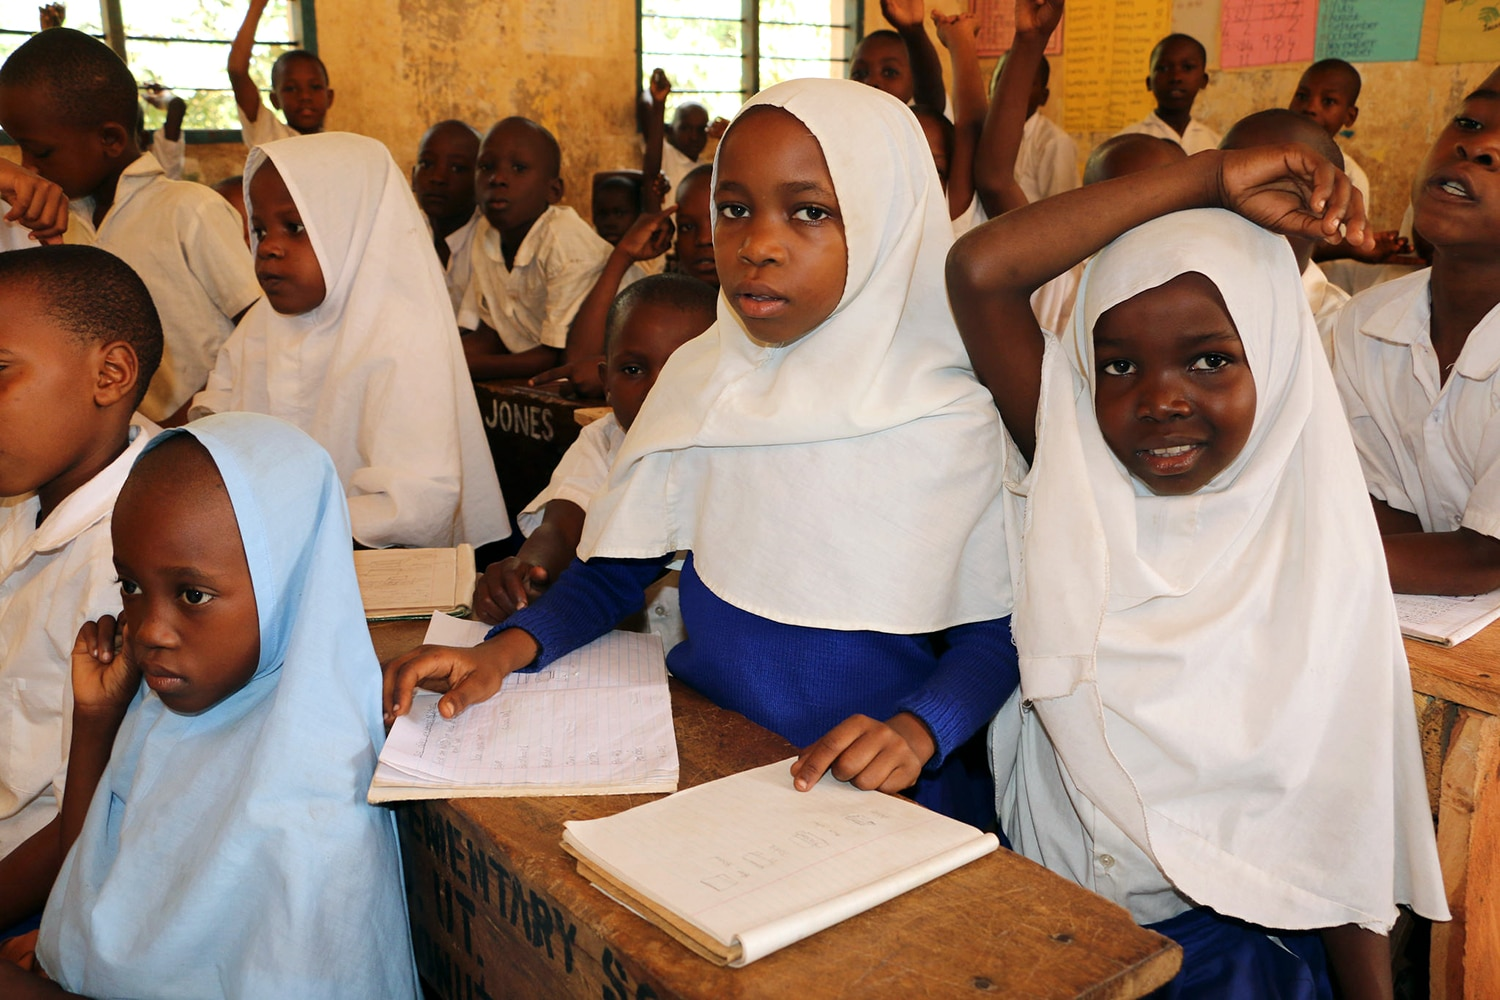 Classroom of young girls in headscarves, at desks with notebooks (USAID)